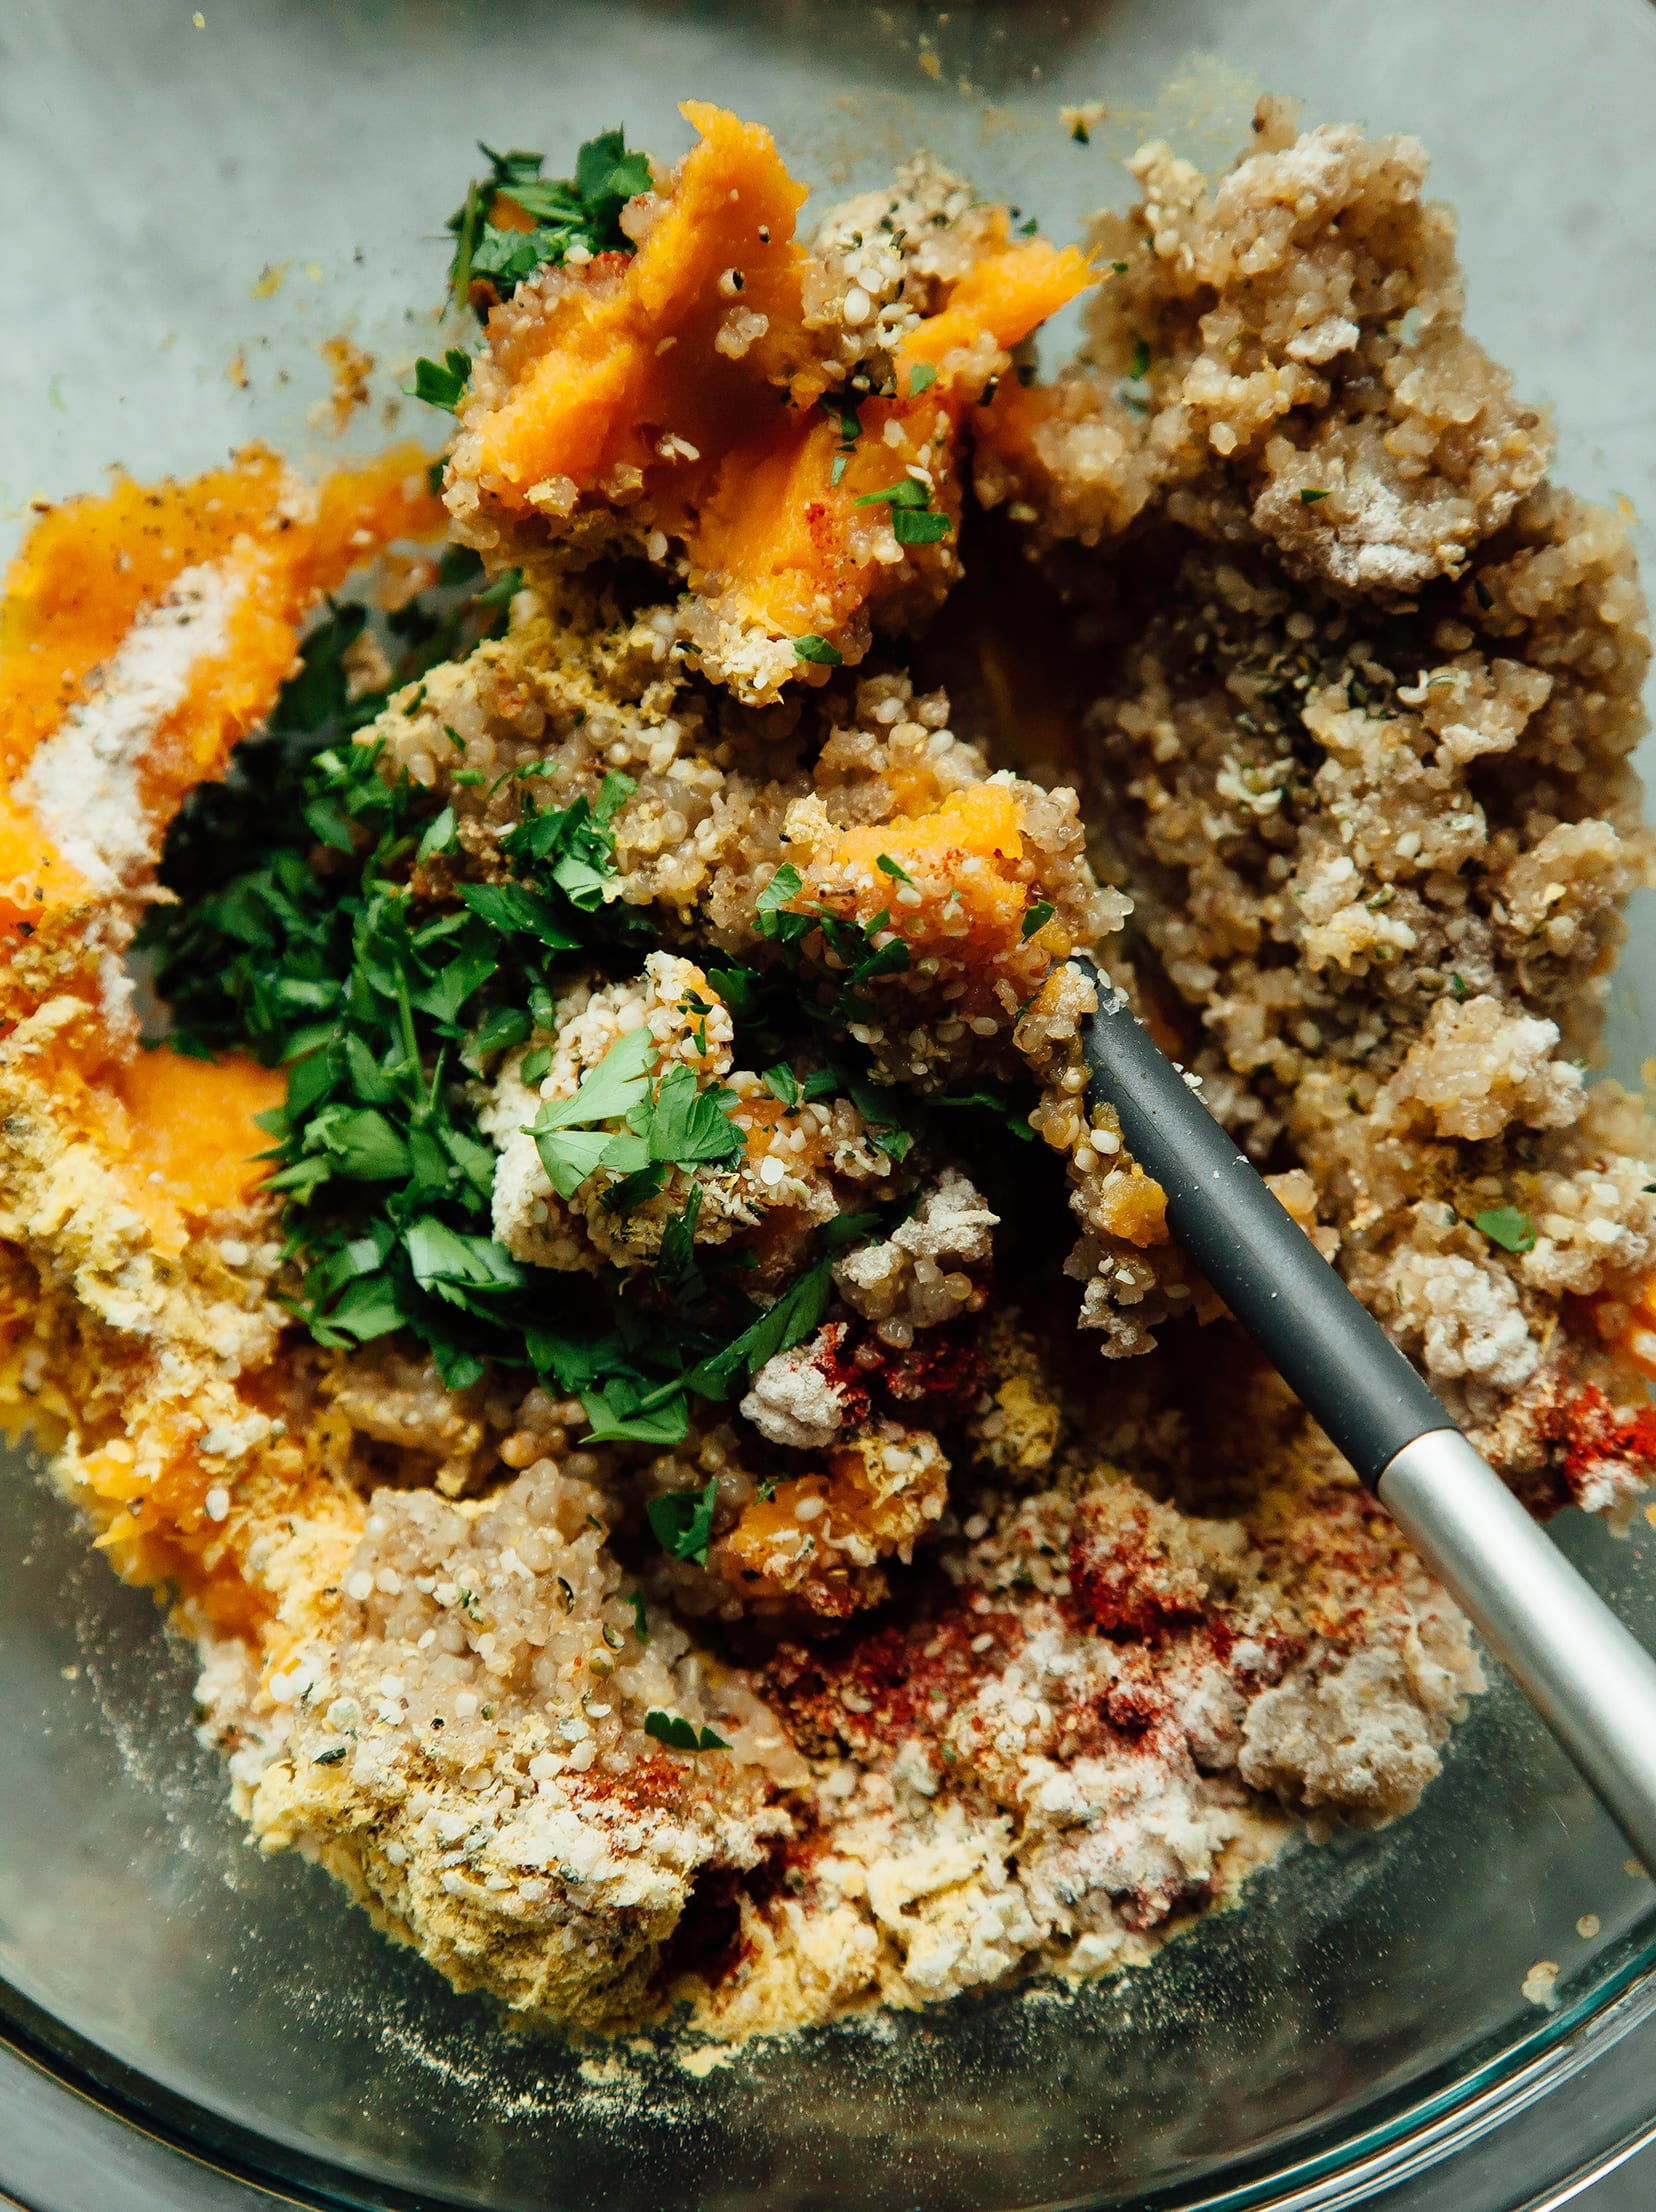 An overhead shot of a quinoa, mashed sweet potato, and herb mixture in a bowl with a spatula.